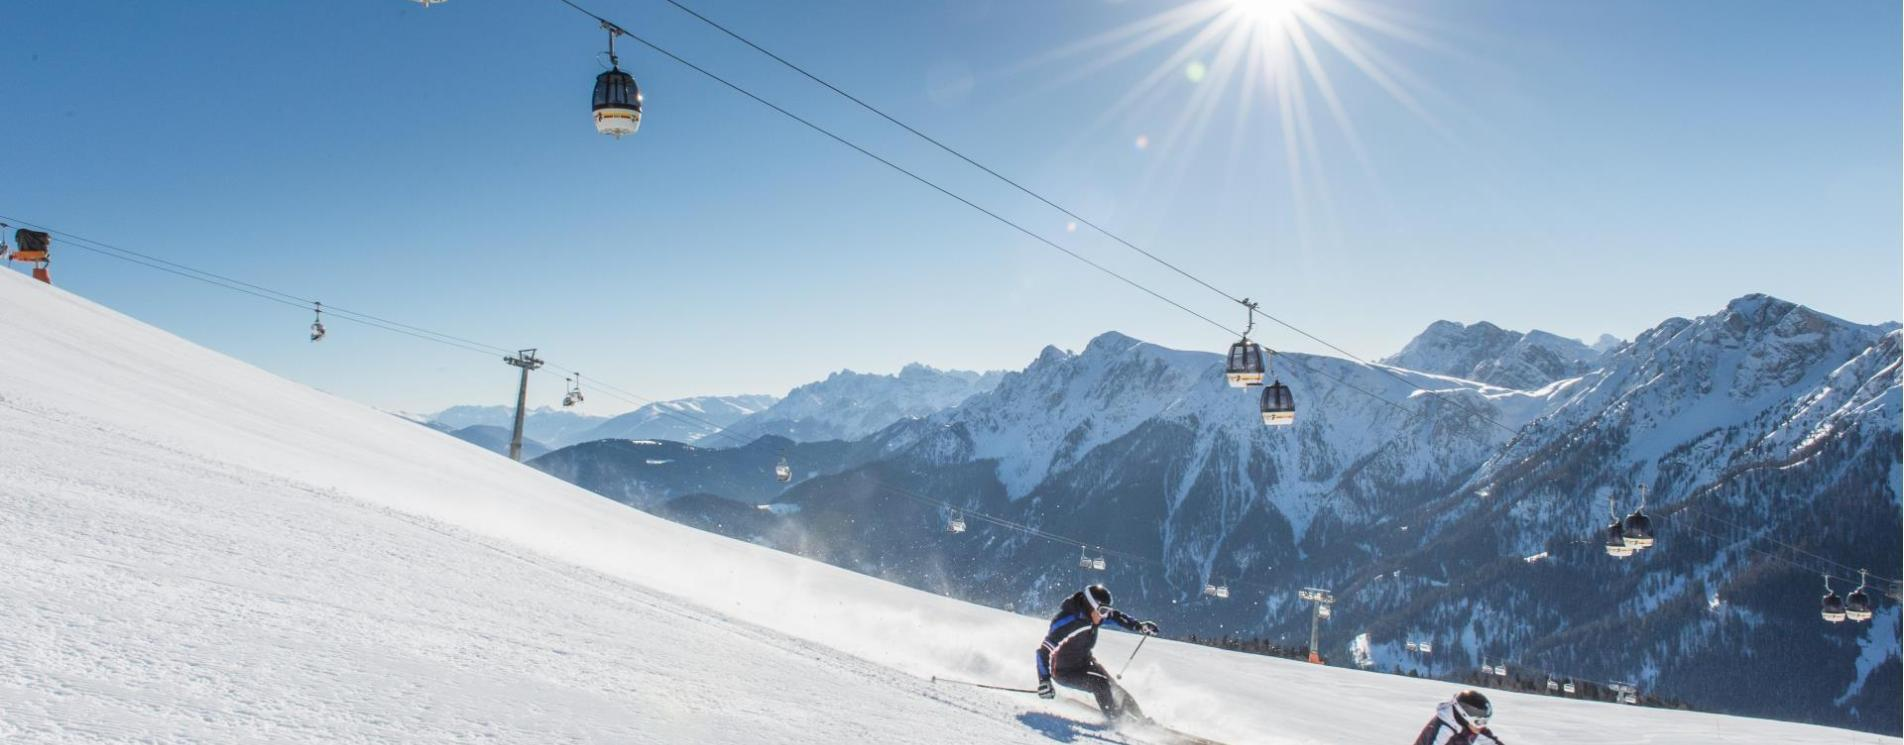 07-olaga-winter-ski-c-tvb-kronplatz-photo-harald-wisthaler